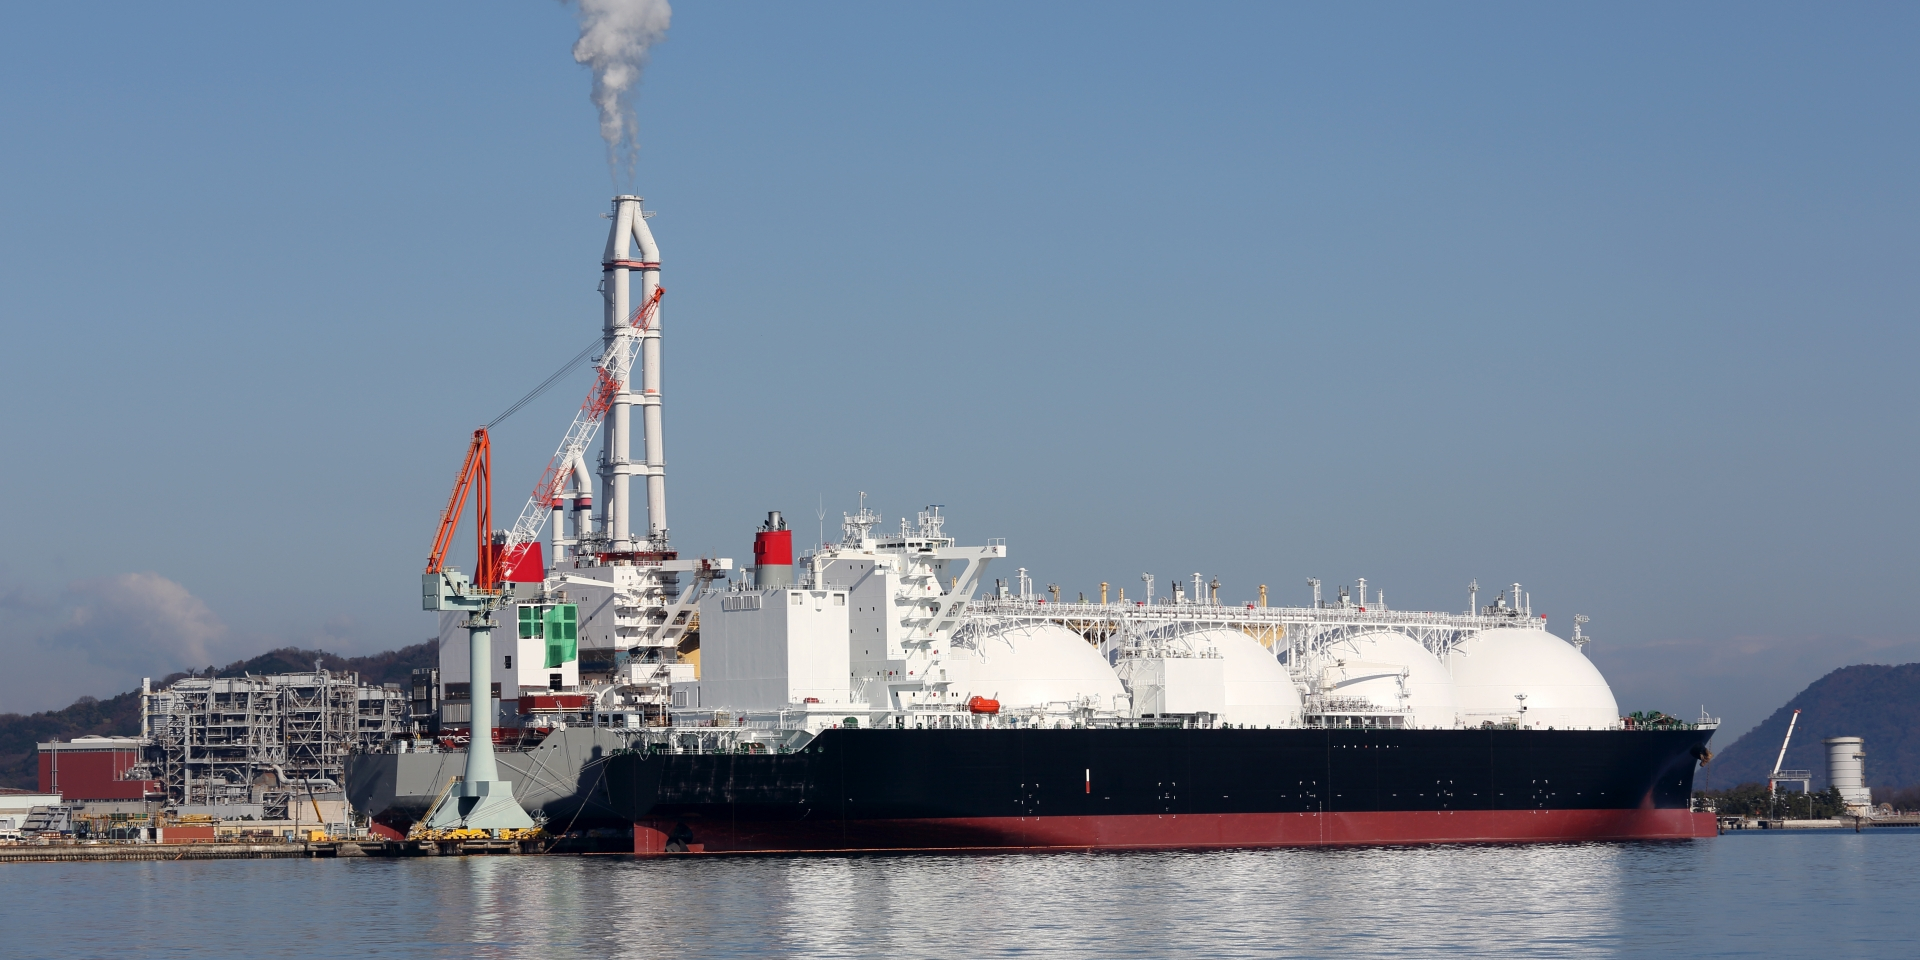 Asia Attracts New Attention as Destination for LPG Exports